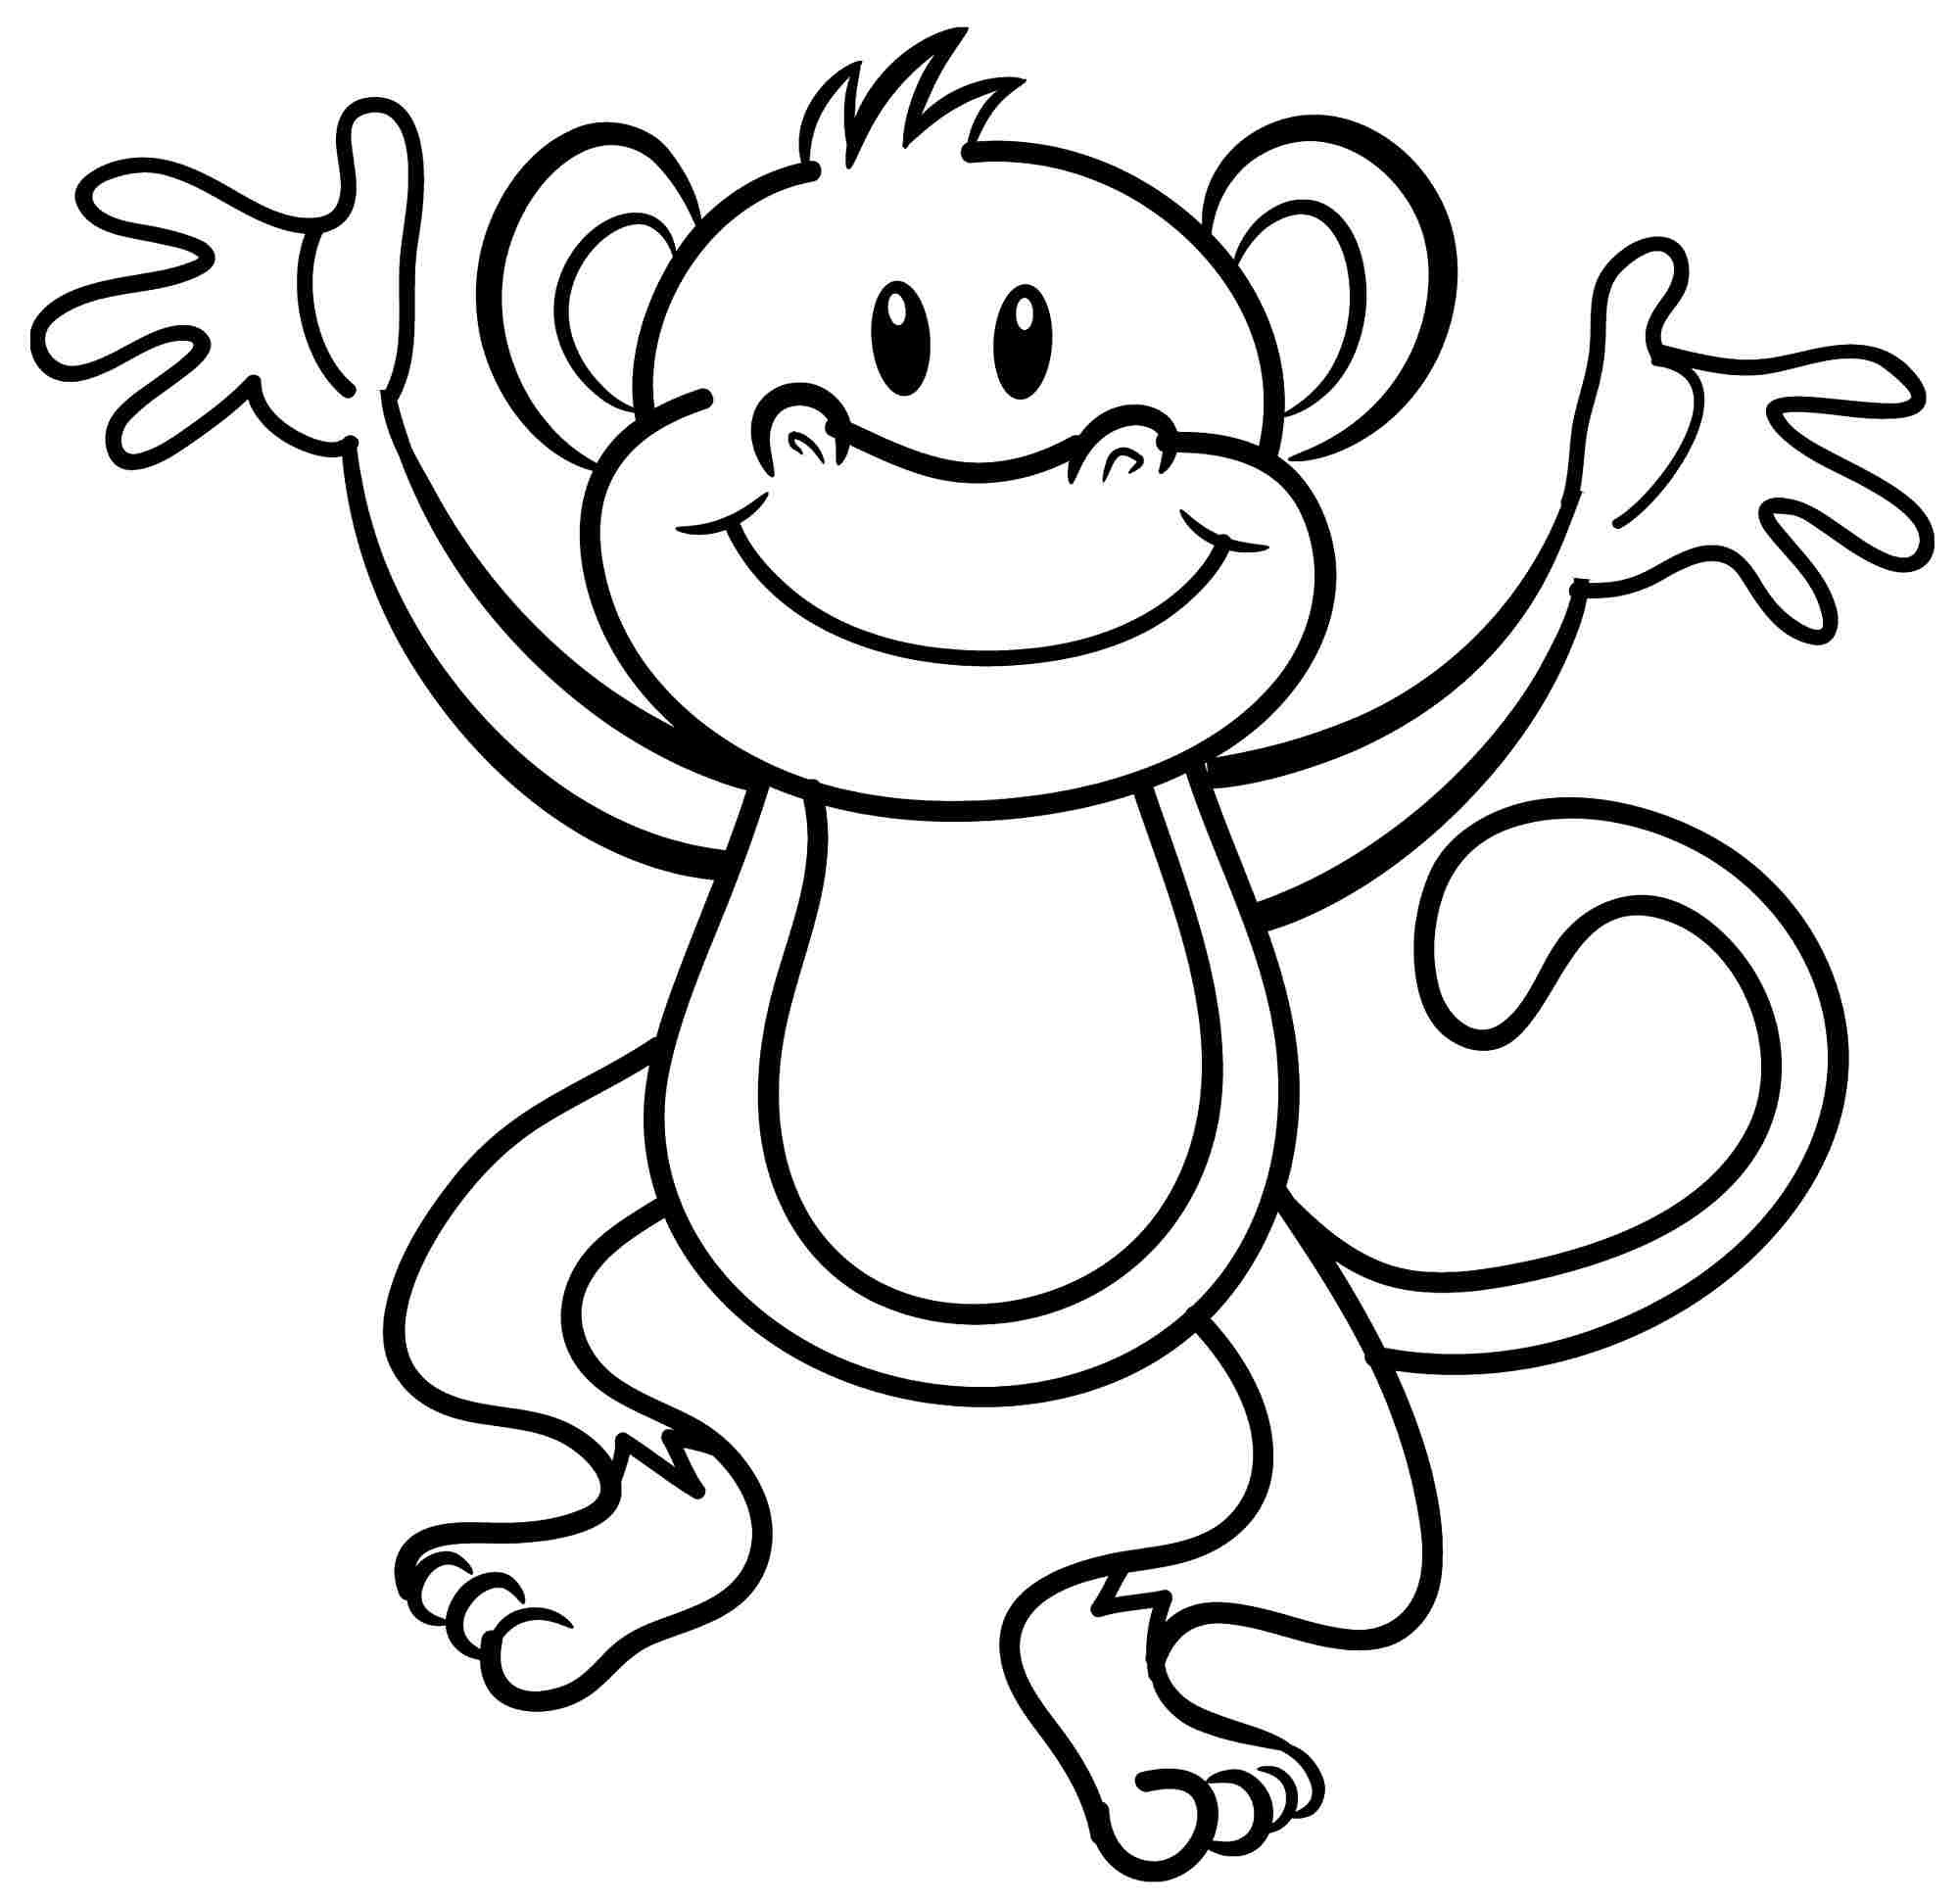 2000x1944 Elegant Coloring Pages For Kids Online